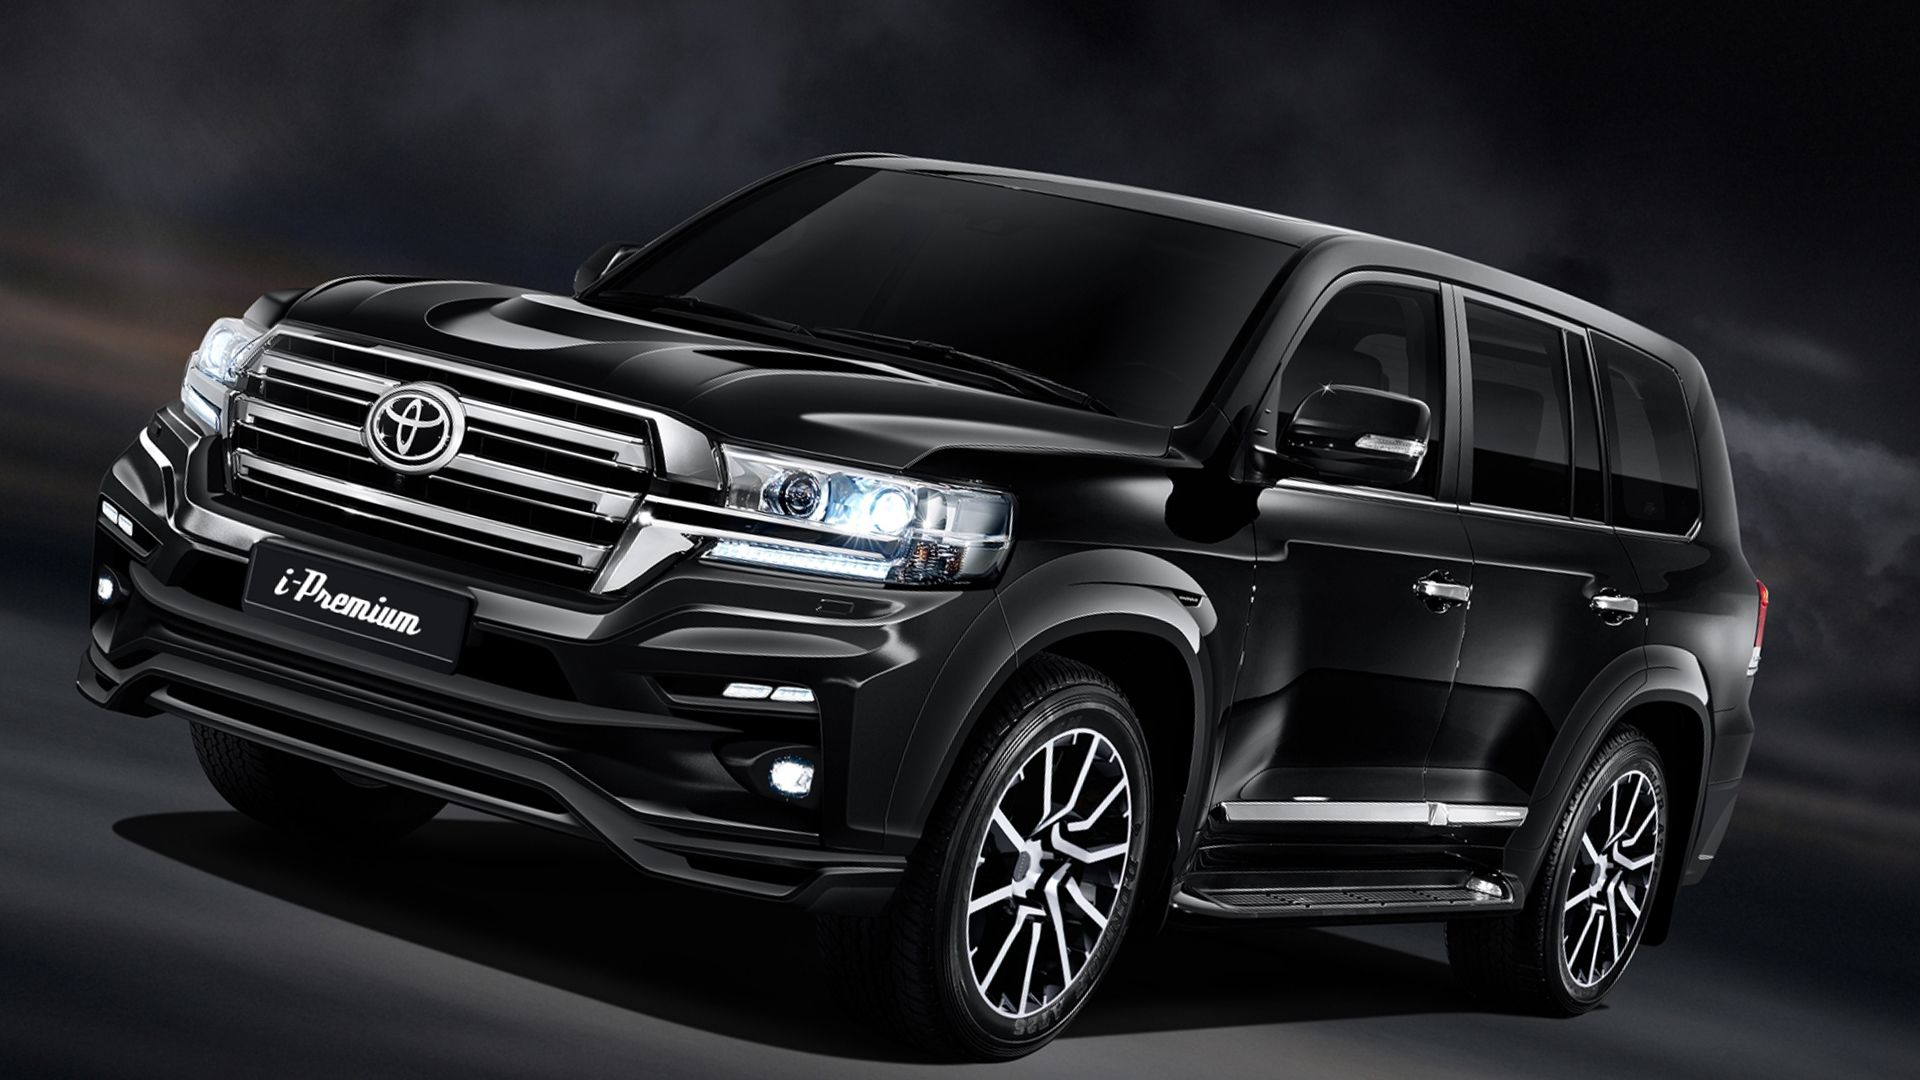 Land Cruiser 300 Release Date 2019 2020 Top Upcoming Cars